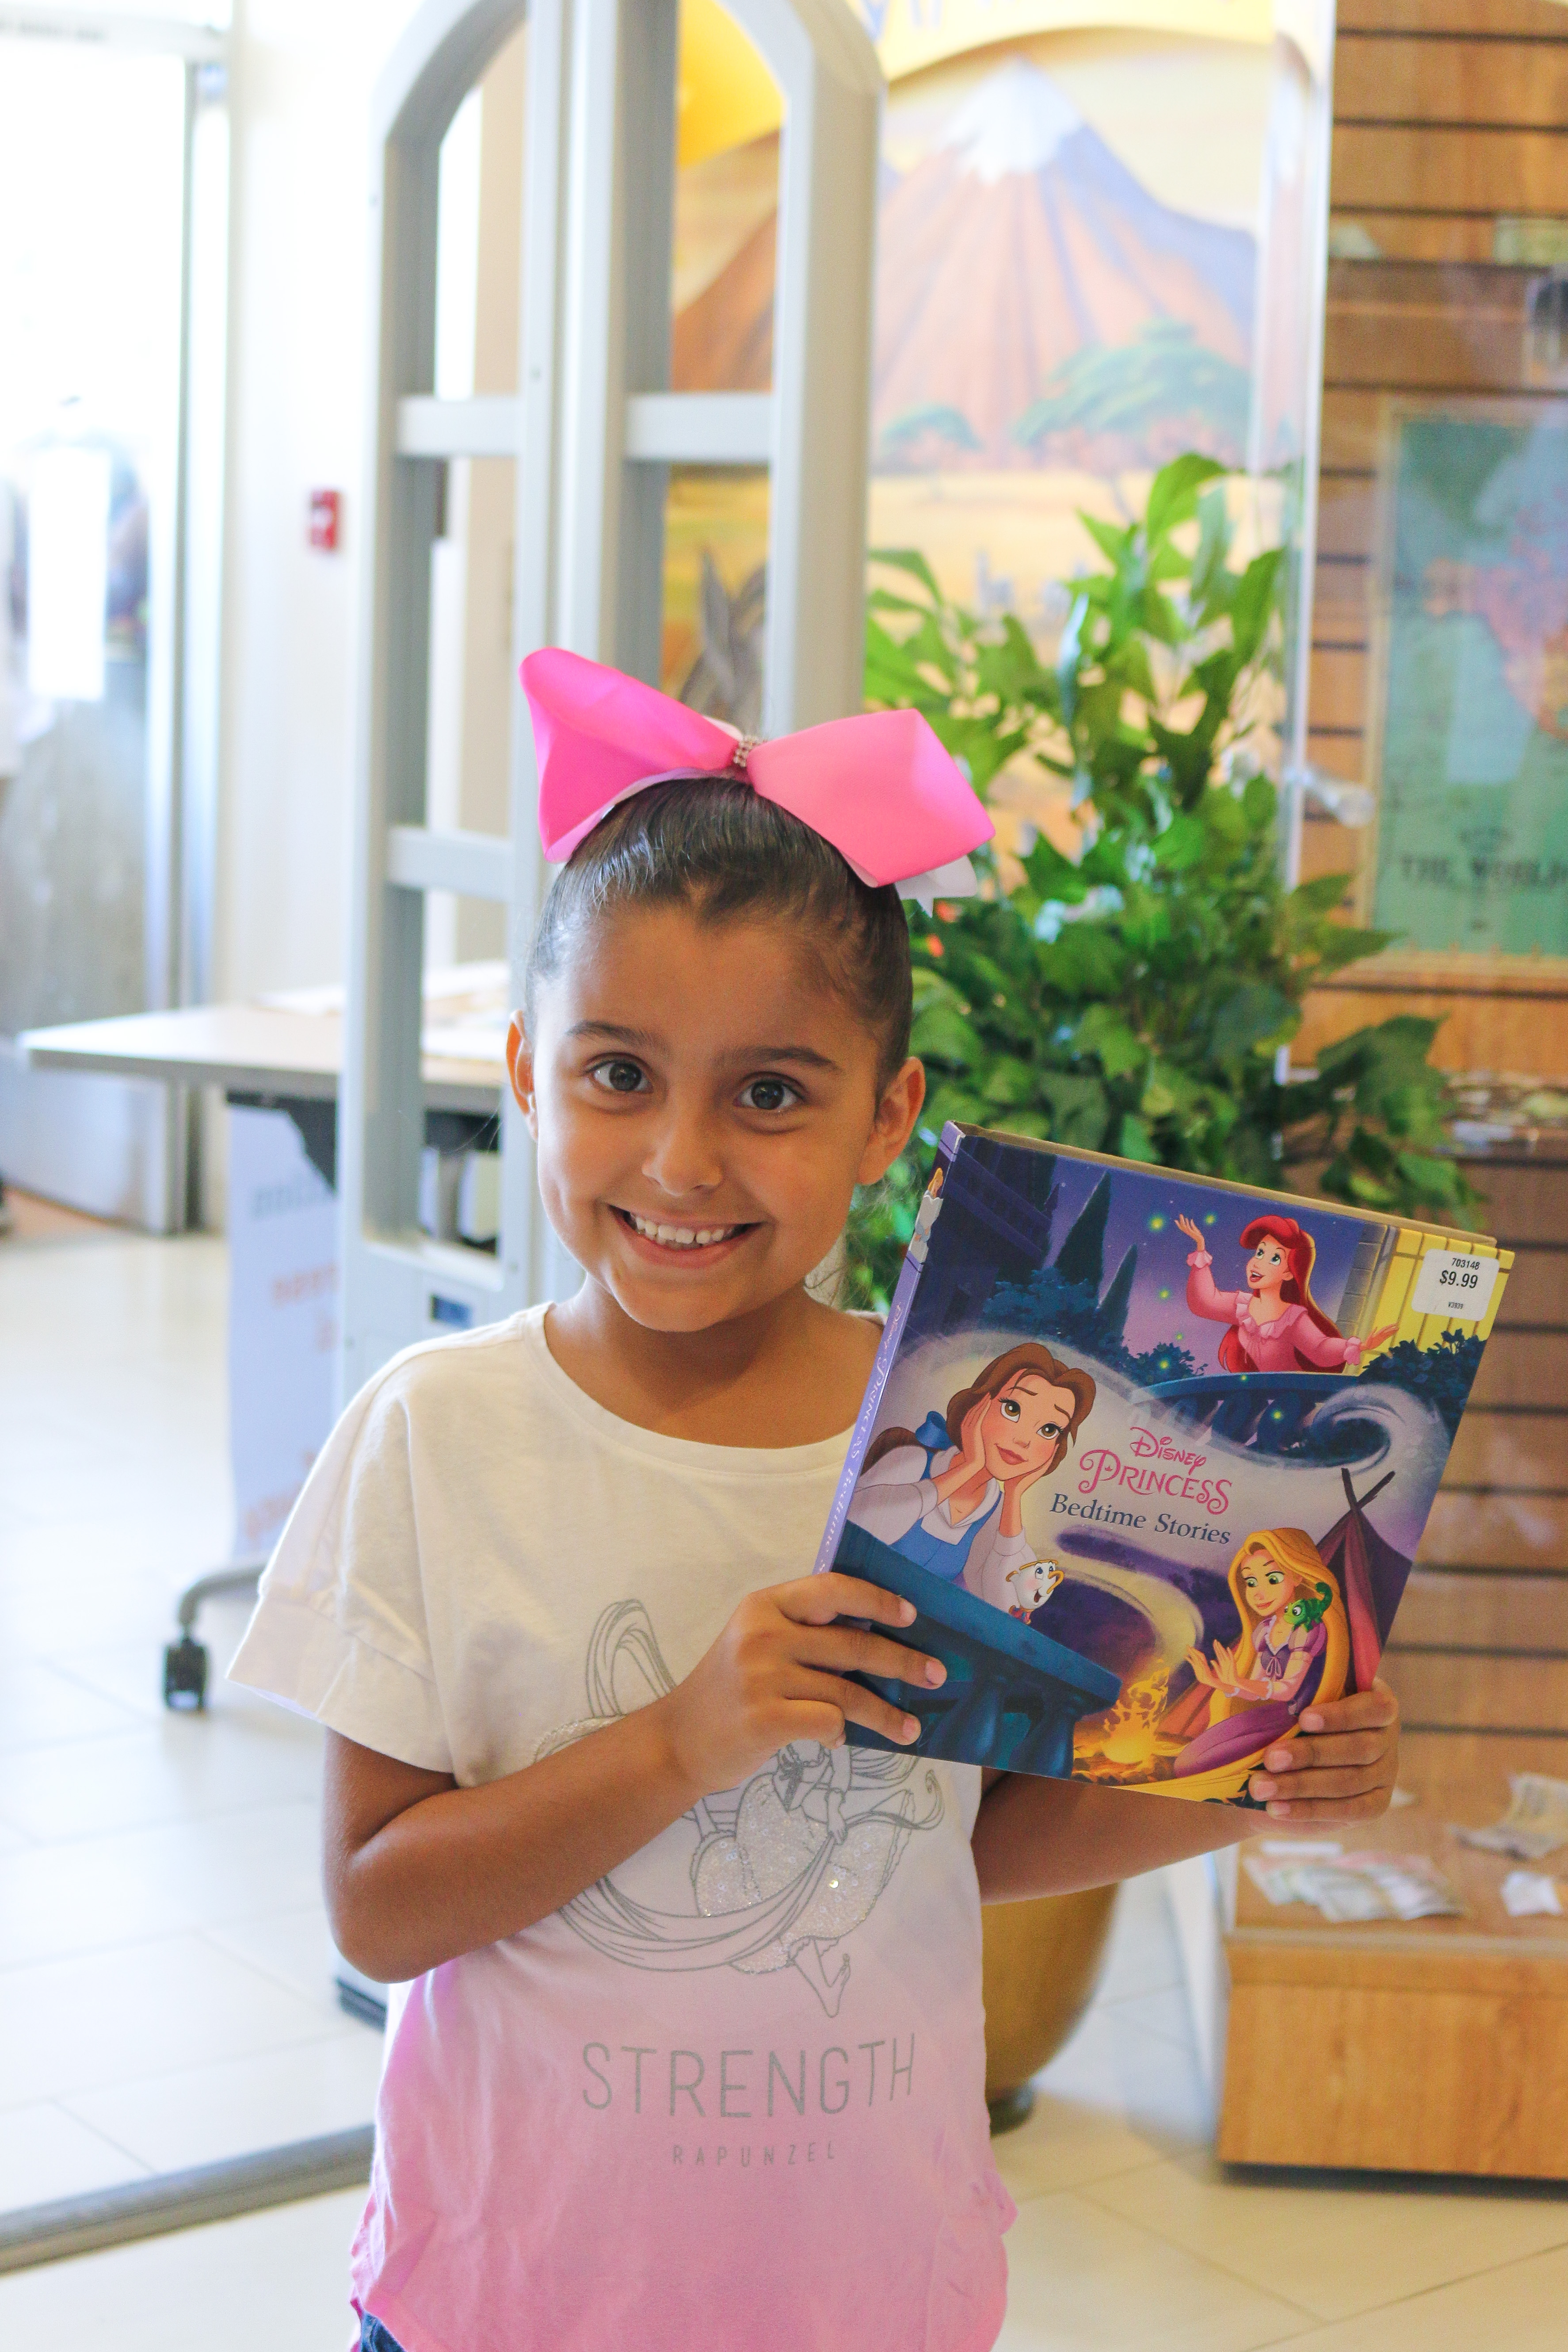 Child holding donation book at Central Library